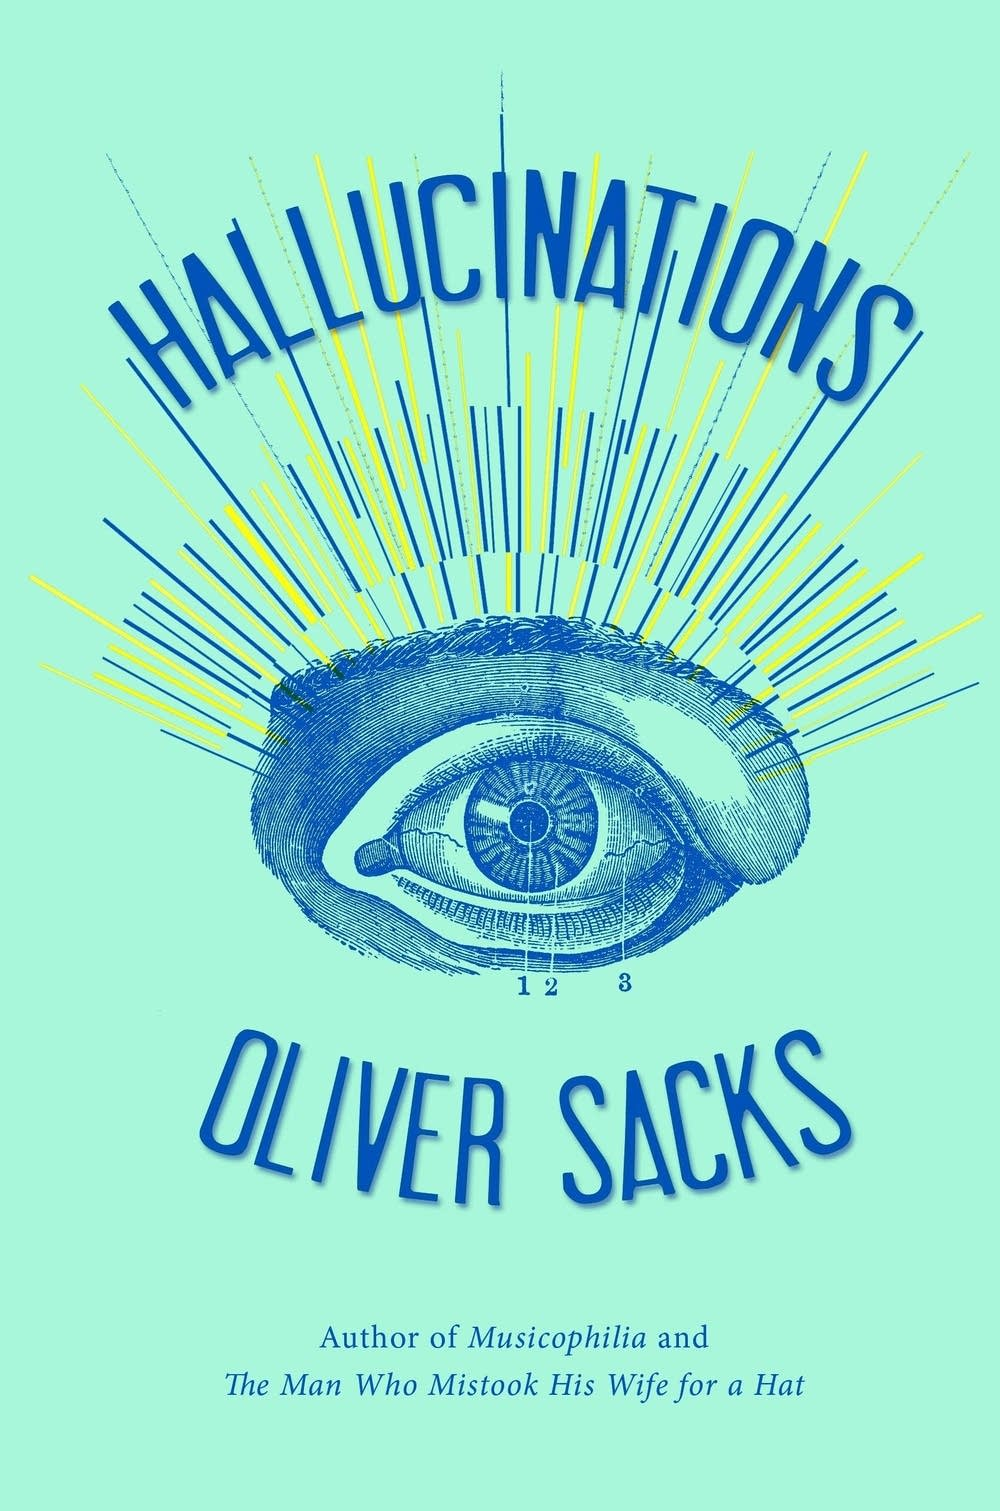 'Hallucinations' by Oliver Sacks